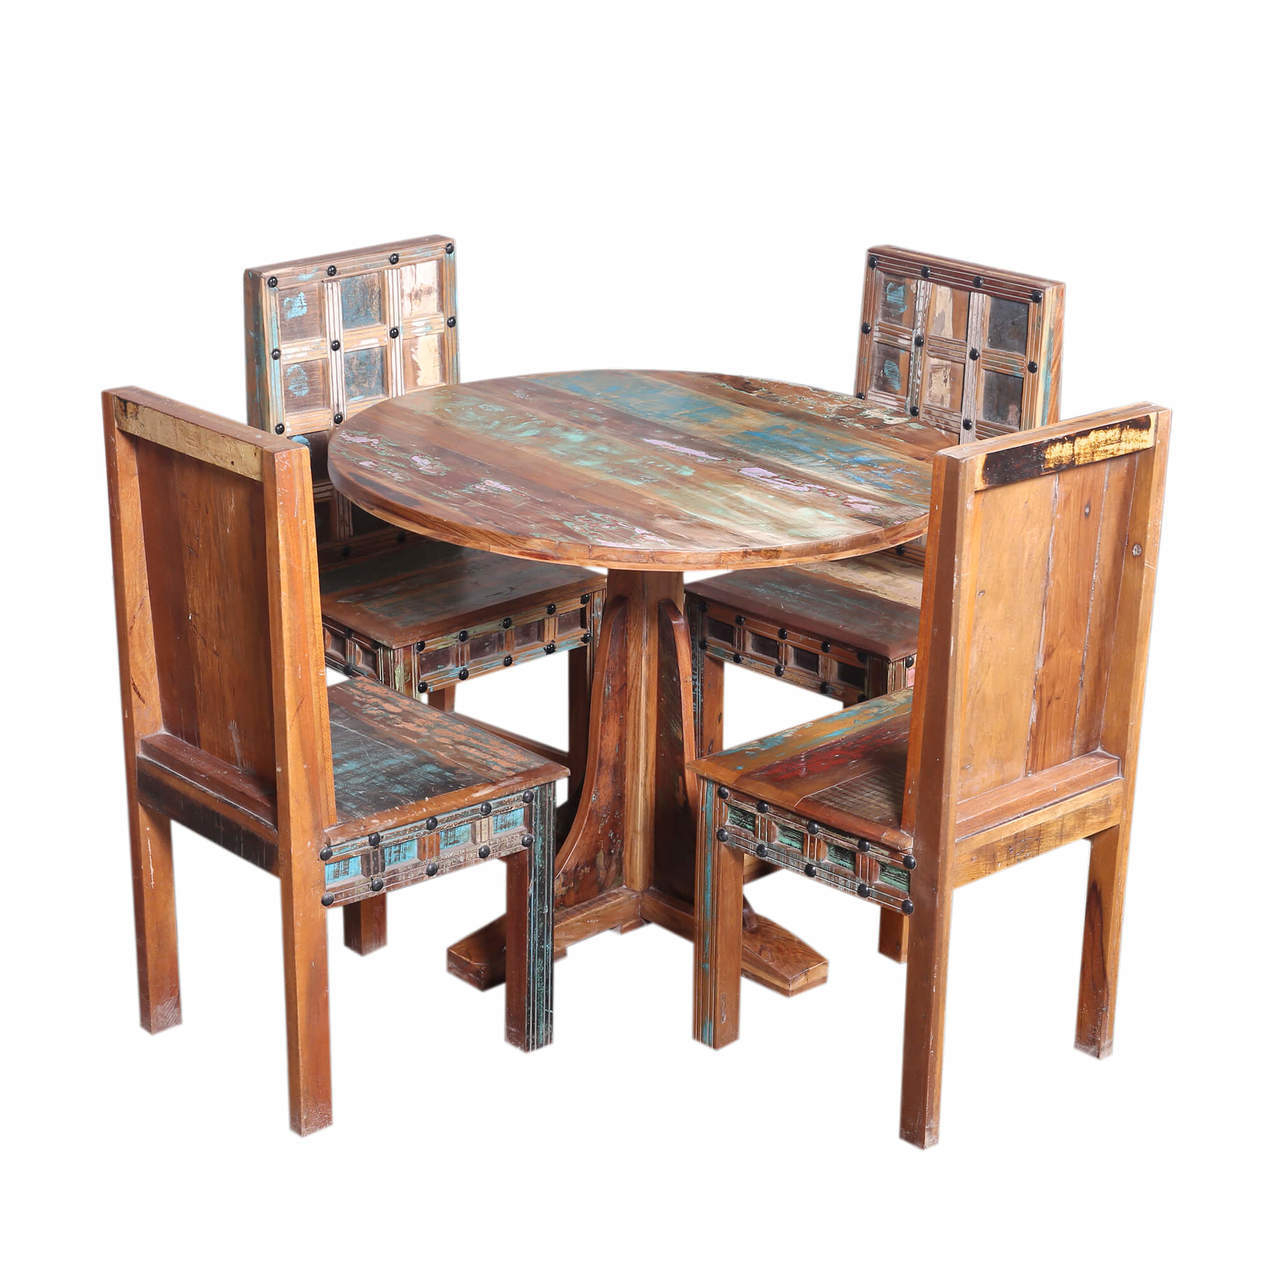 Woburn Rustic Trestle Base Round Reclaimed Wood Dining Table Set Intended For Current Small Round Dining Tables With Reclaimed Wood (View 16 of 25)